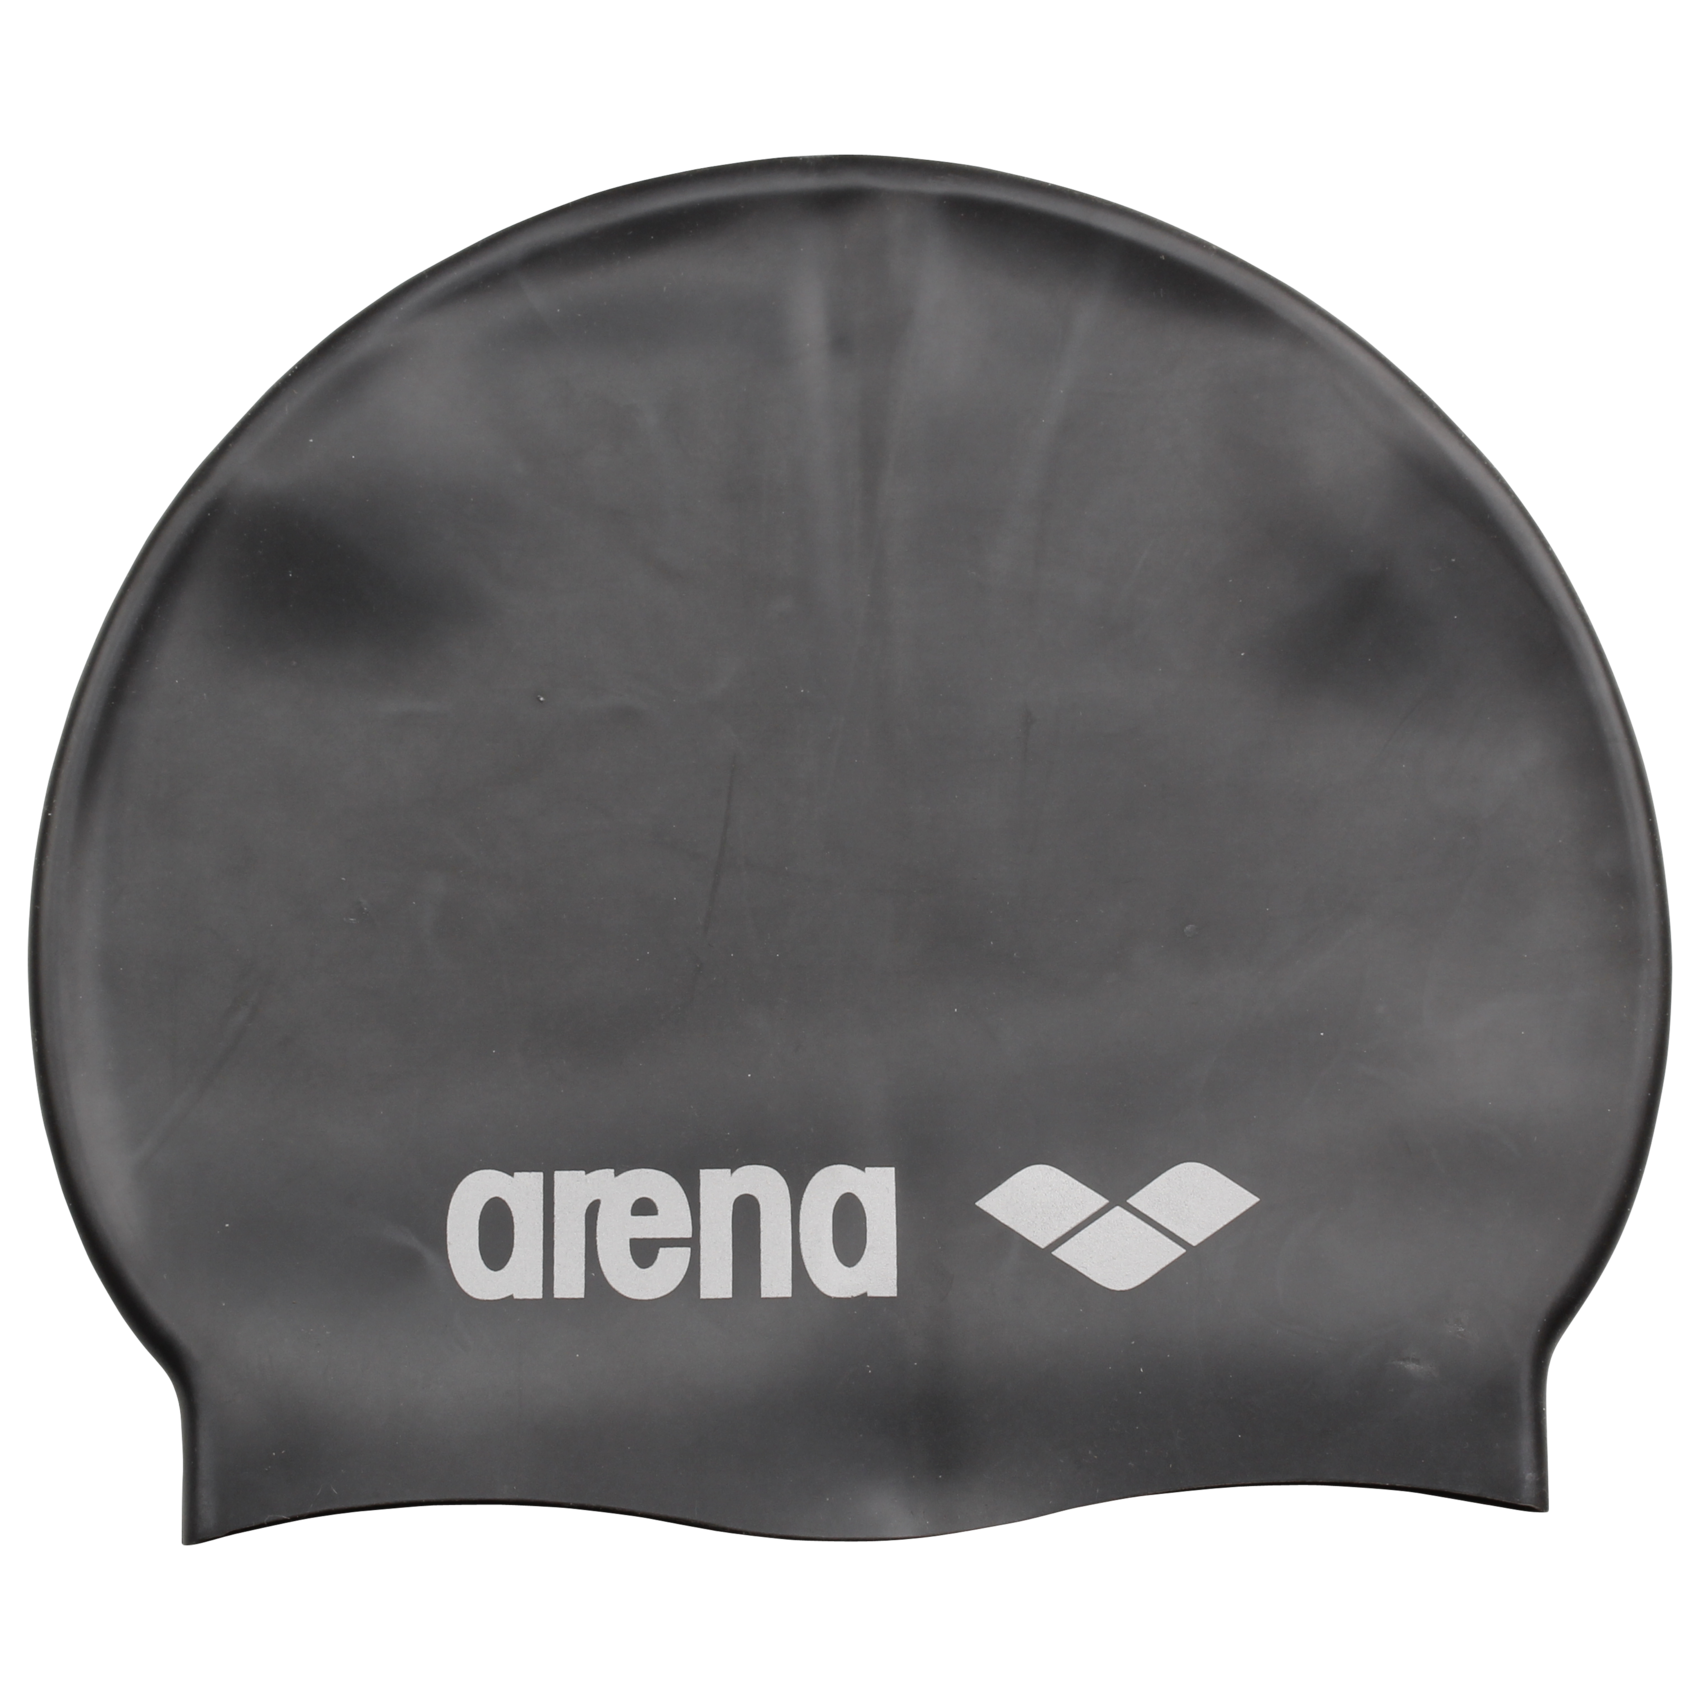 Arena - Classic Silicone Badehætte - Sort